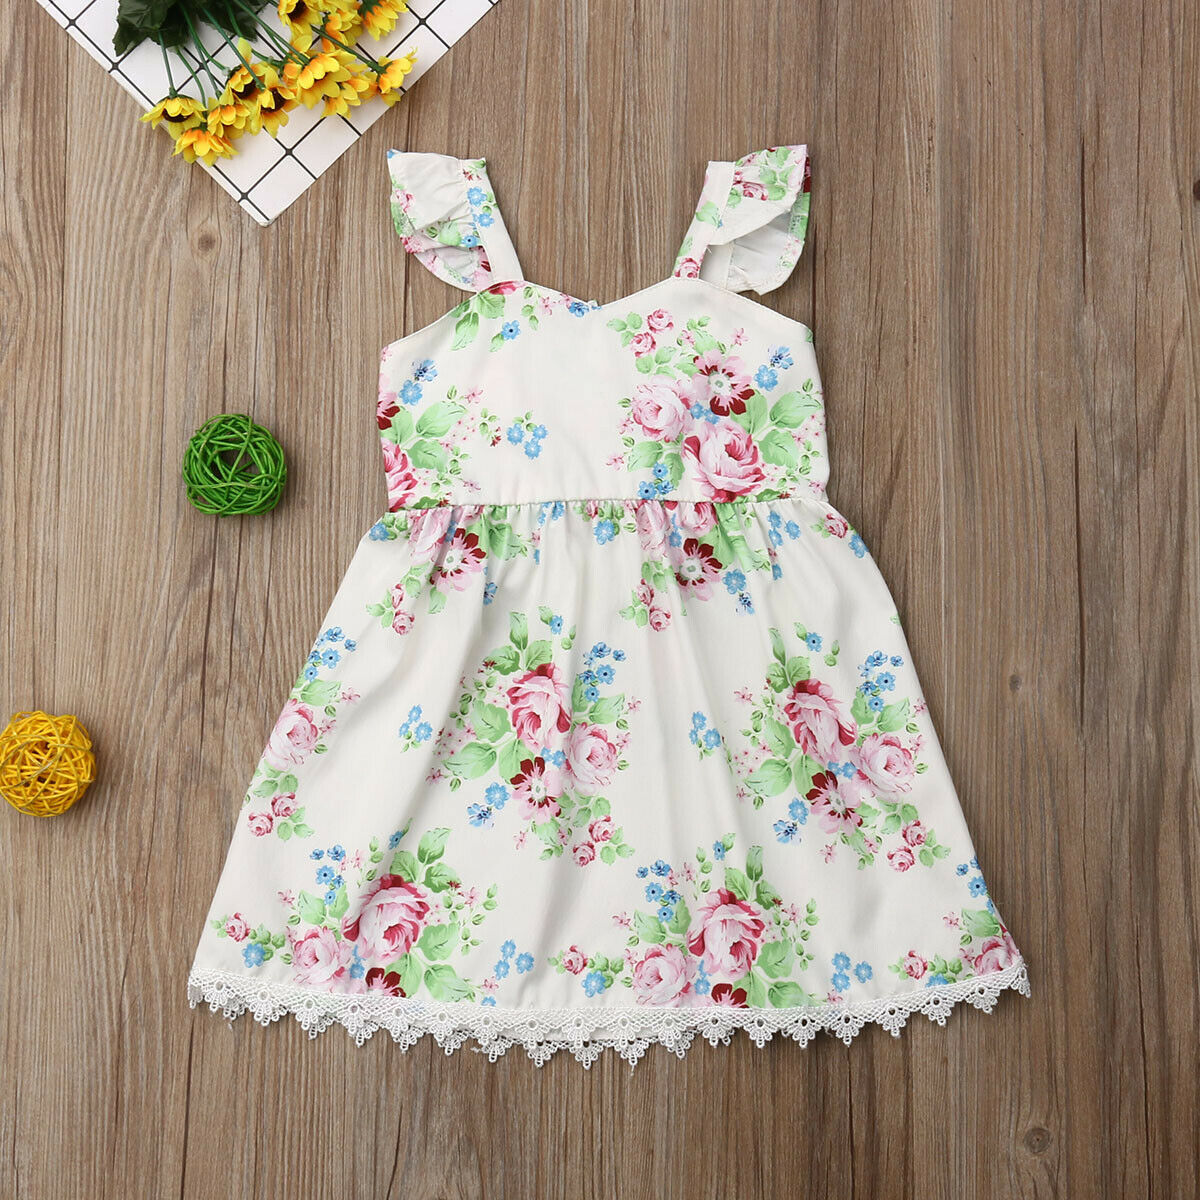 Flower Princess Dress Girl Kids Baby Party Wedding Pageant Floral Casual Dresses